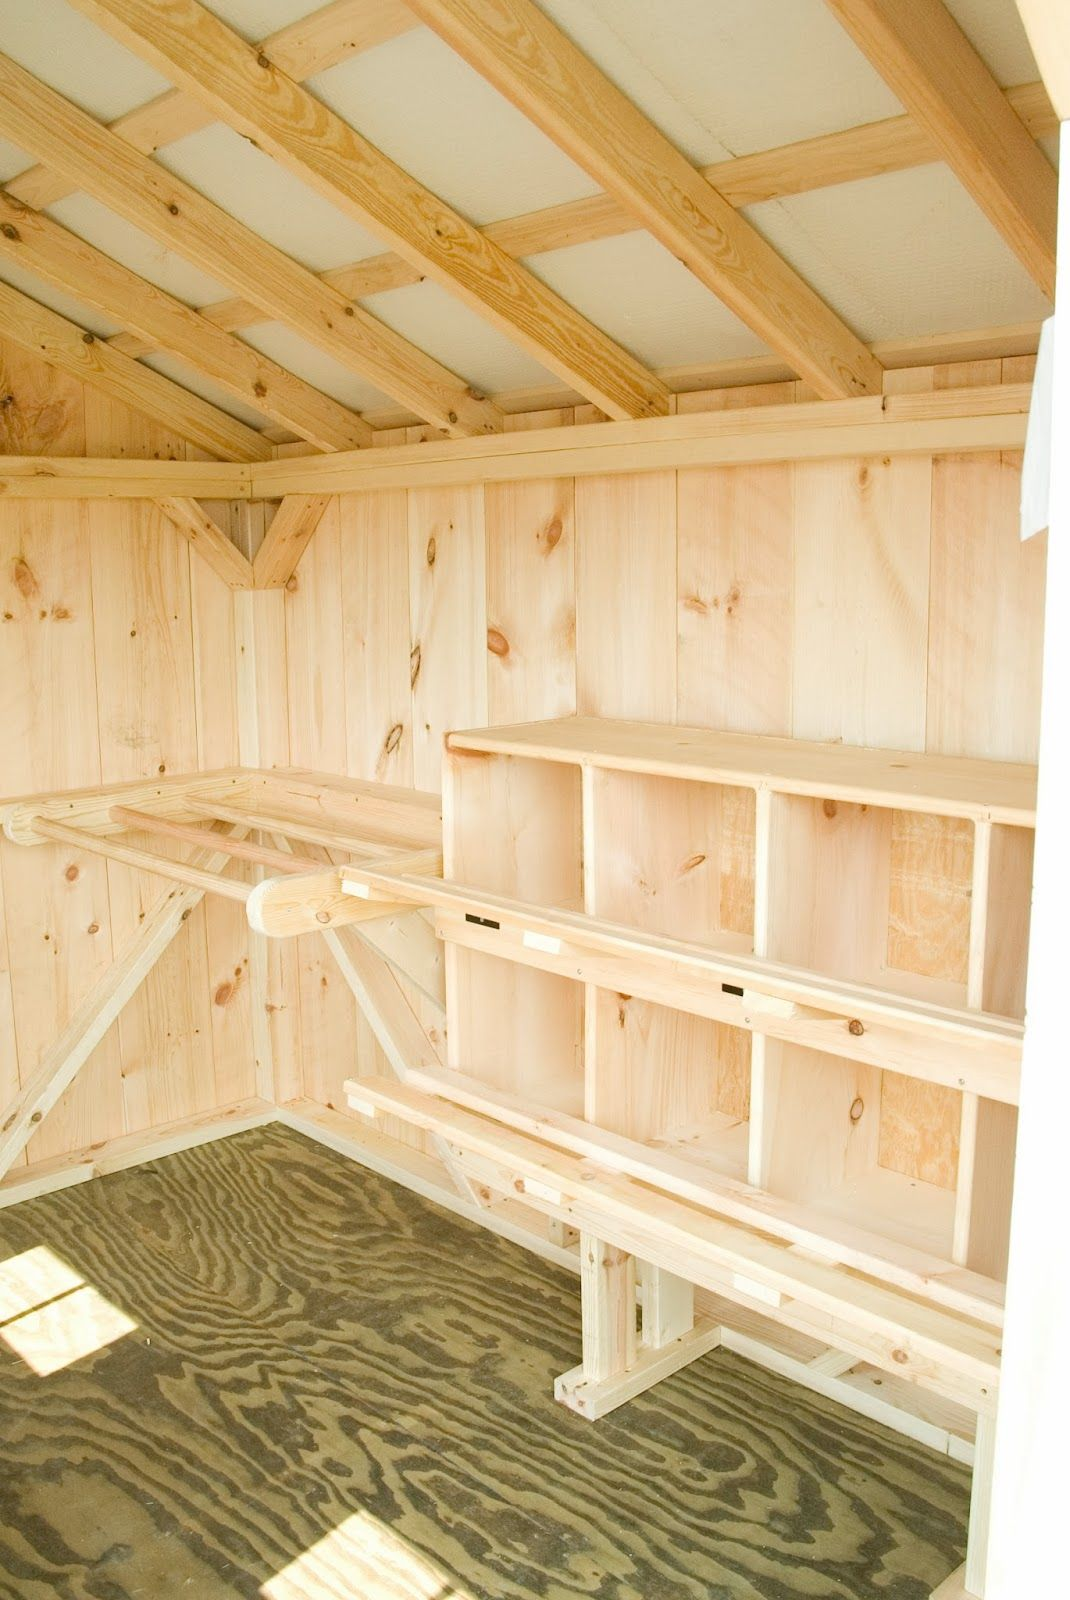 Chicken House Plans: Truths Of Building A Chicken Coop | Raising ...